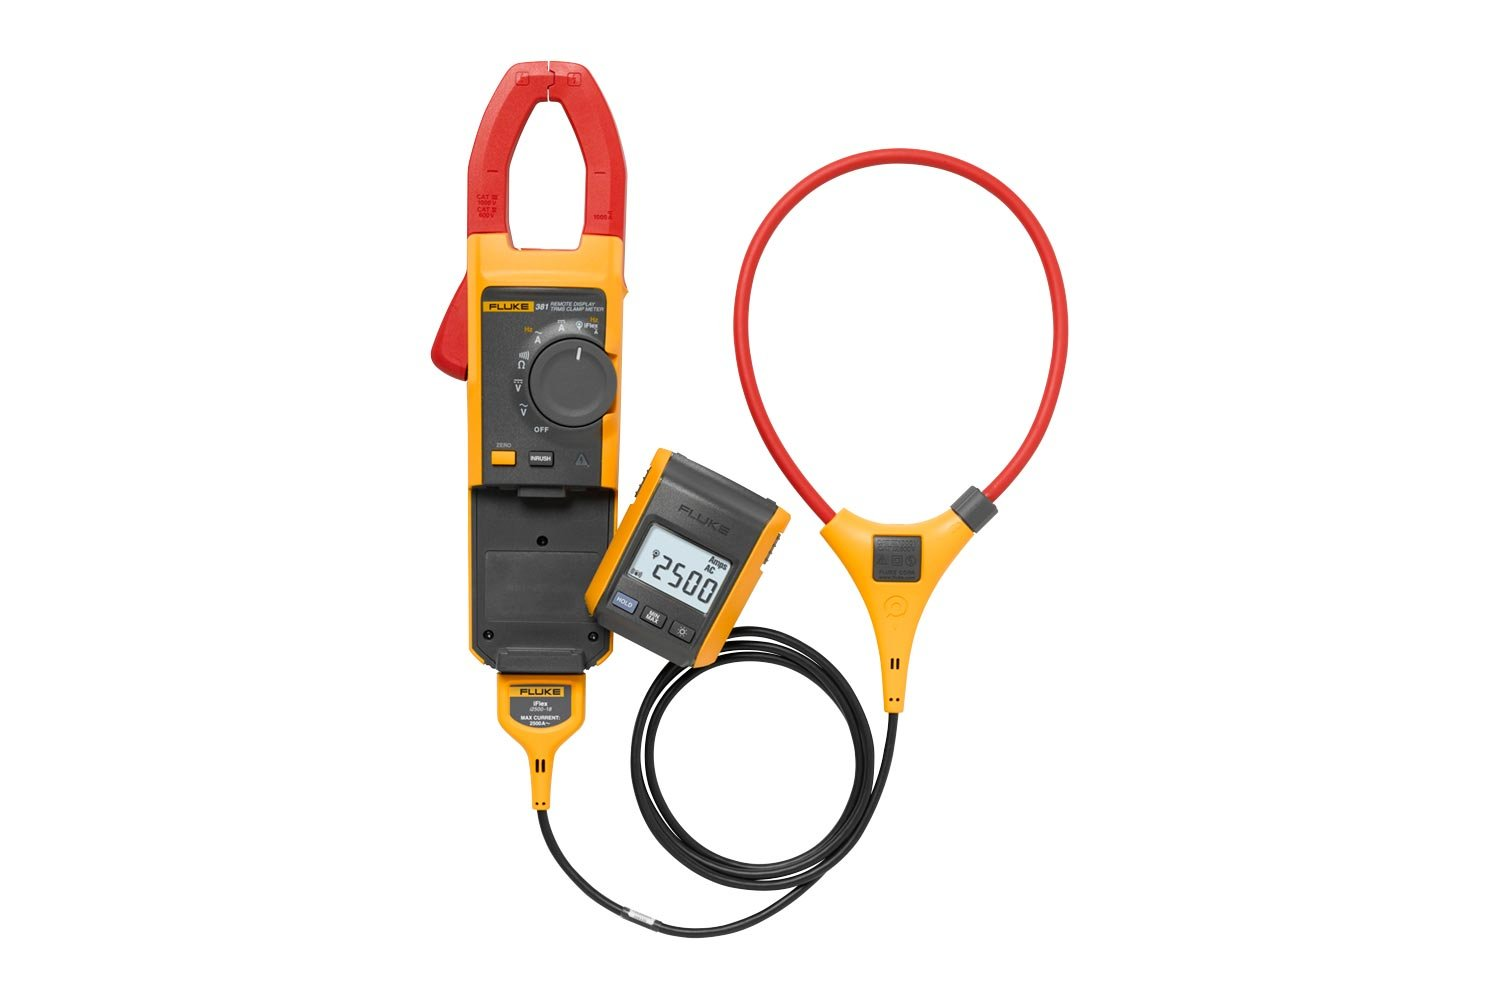 Fluke 381 Remote Display True-rms AC/DC Clamp Meter with iFlex®